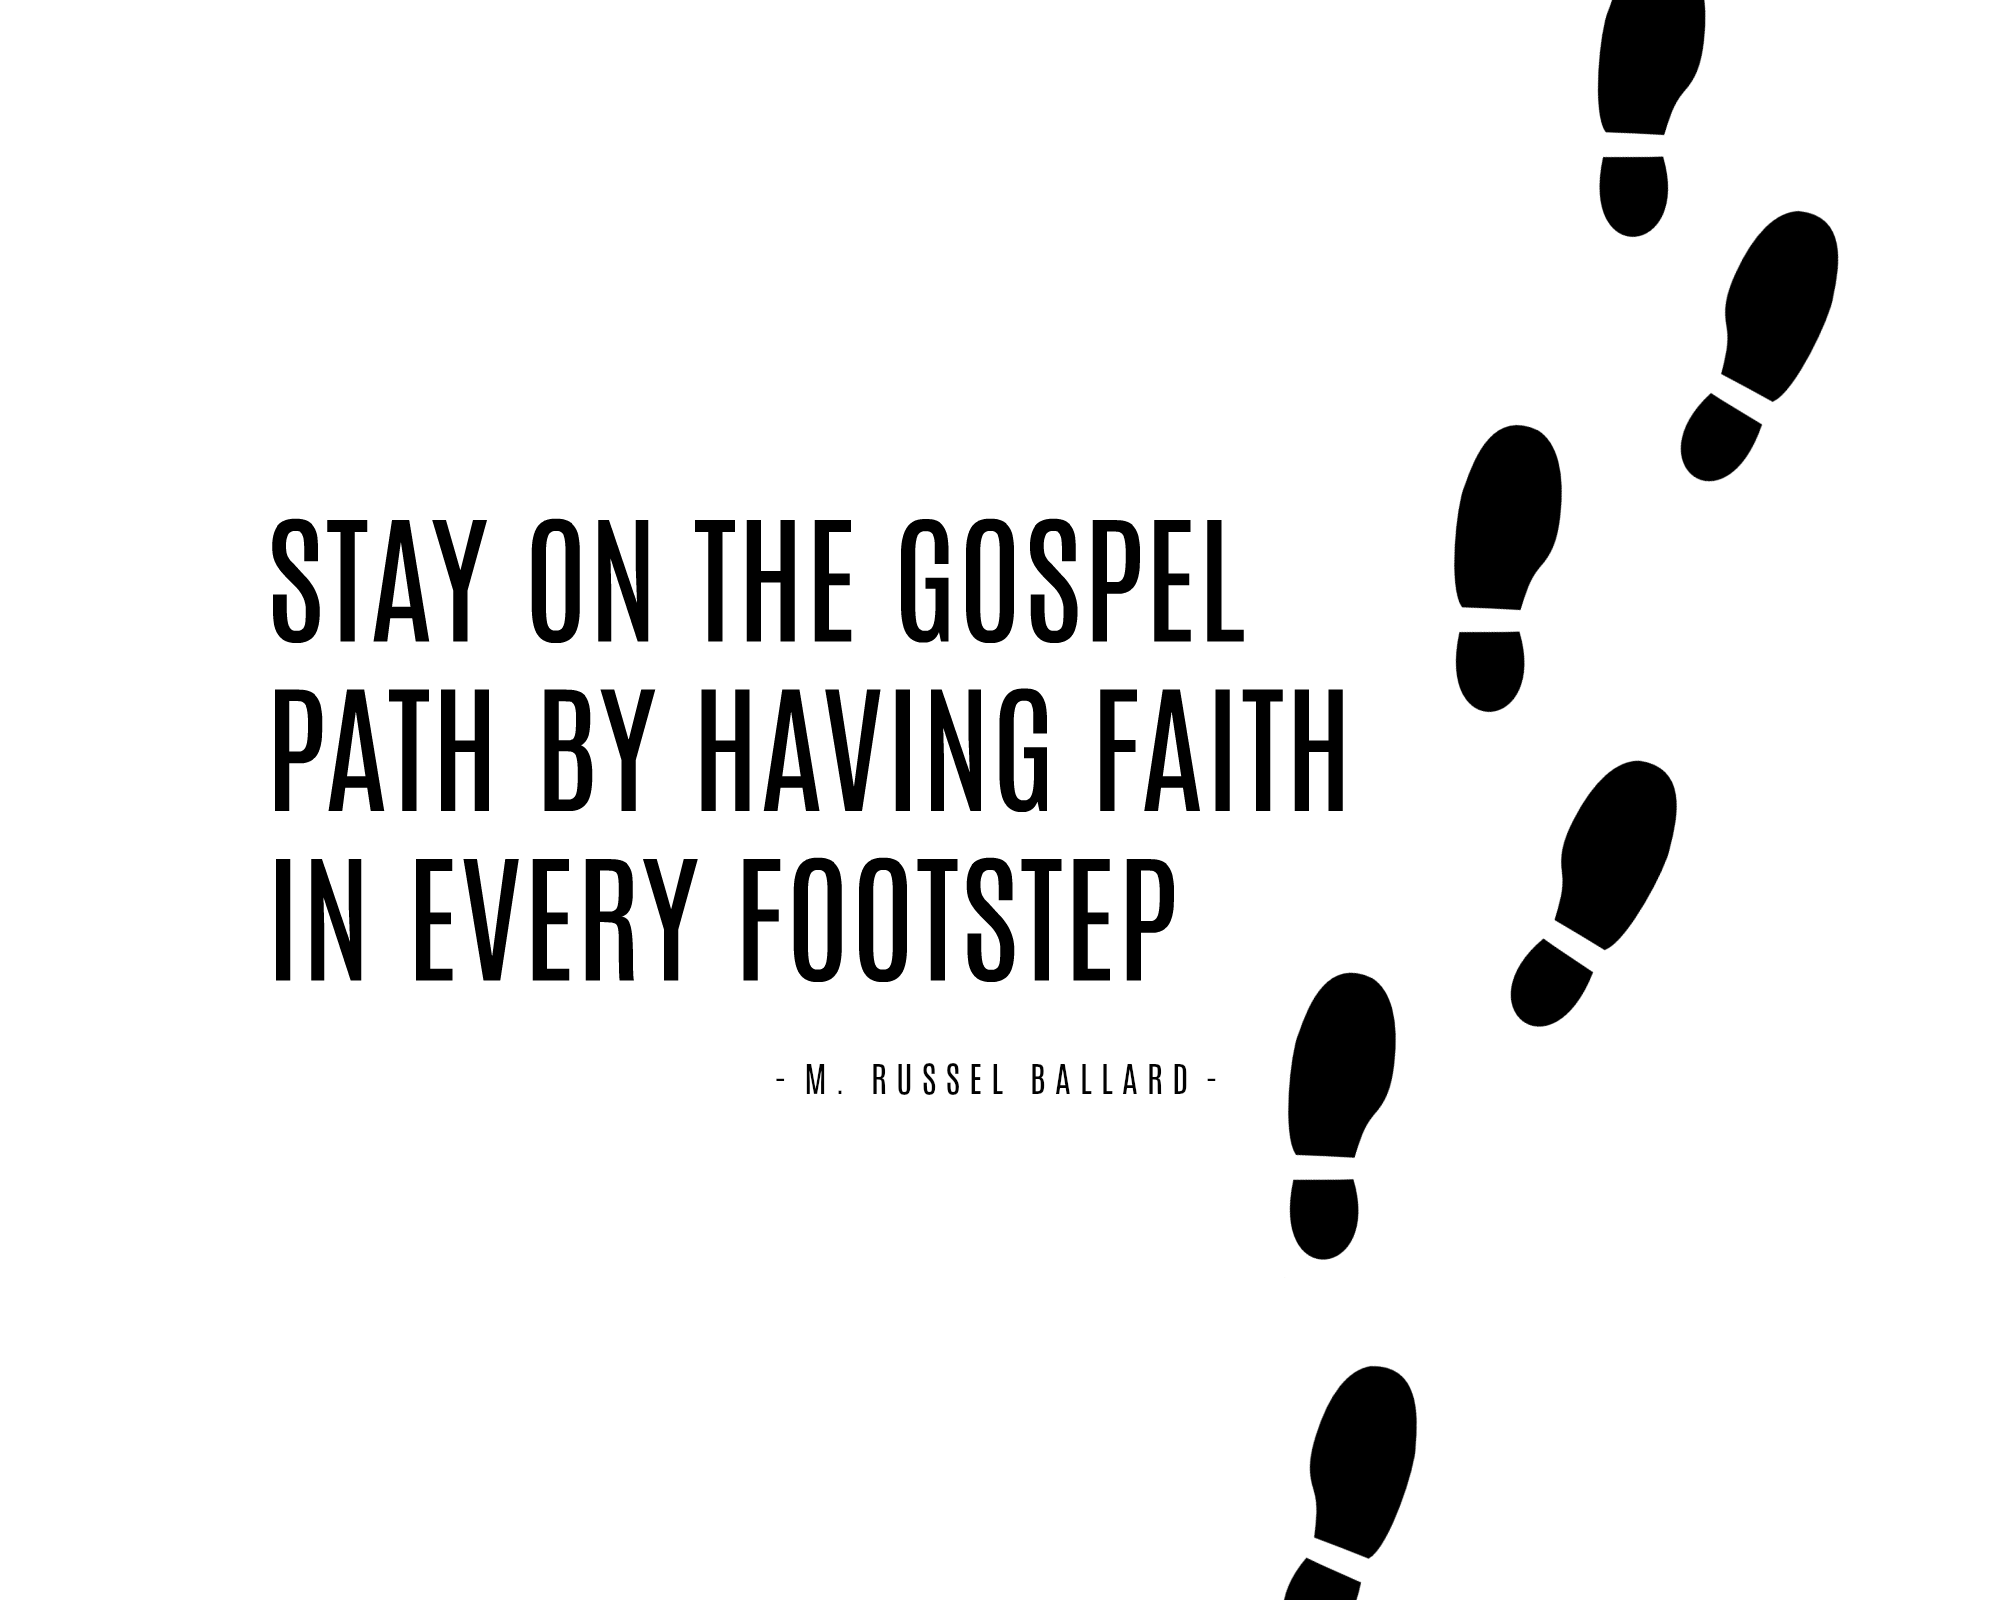 Stay on the gospel path by having faith in every footstep. - M. Russel Ballard | General Conference Quote | October 2017